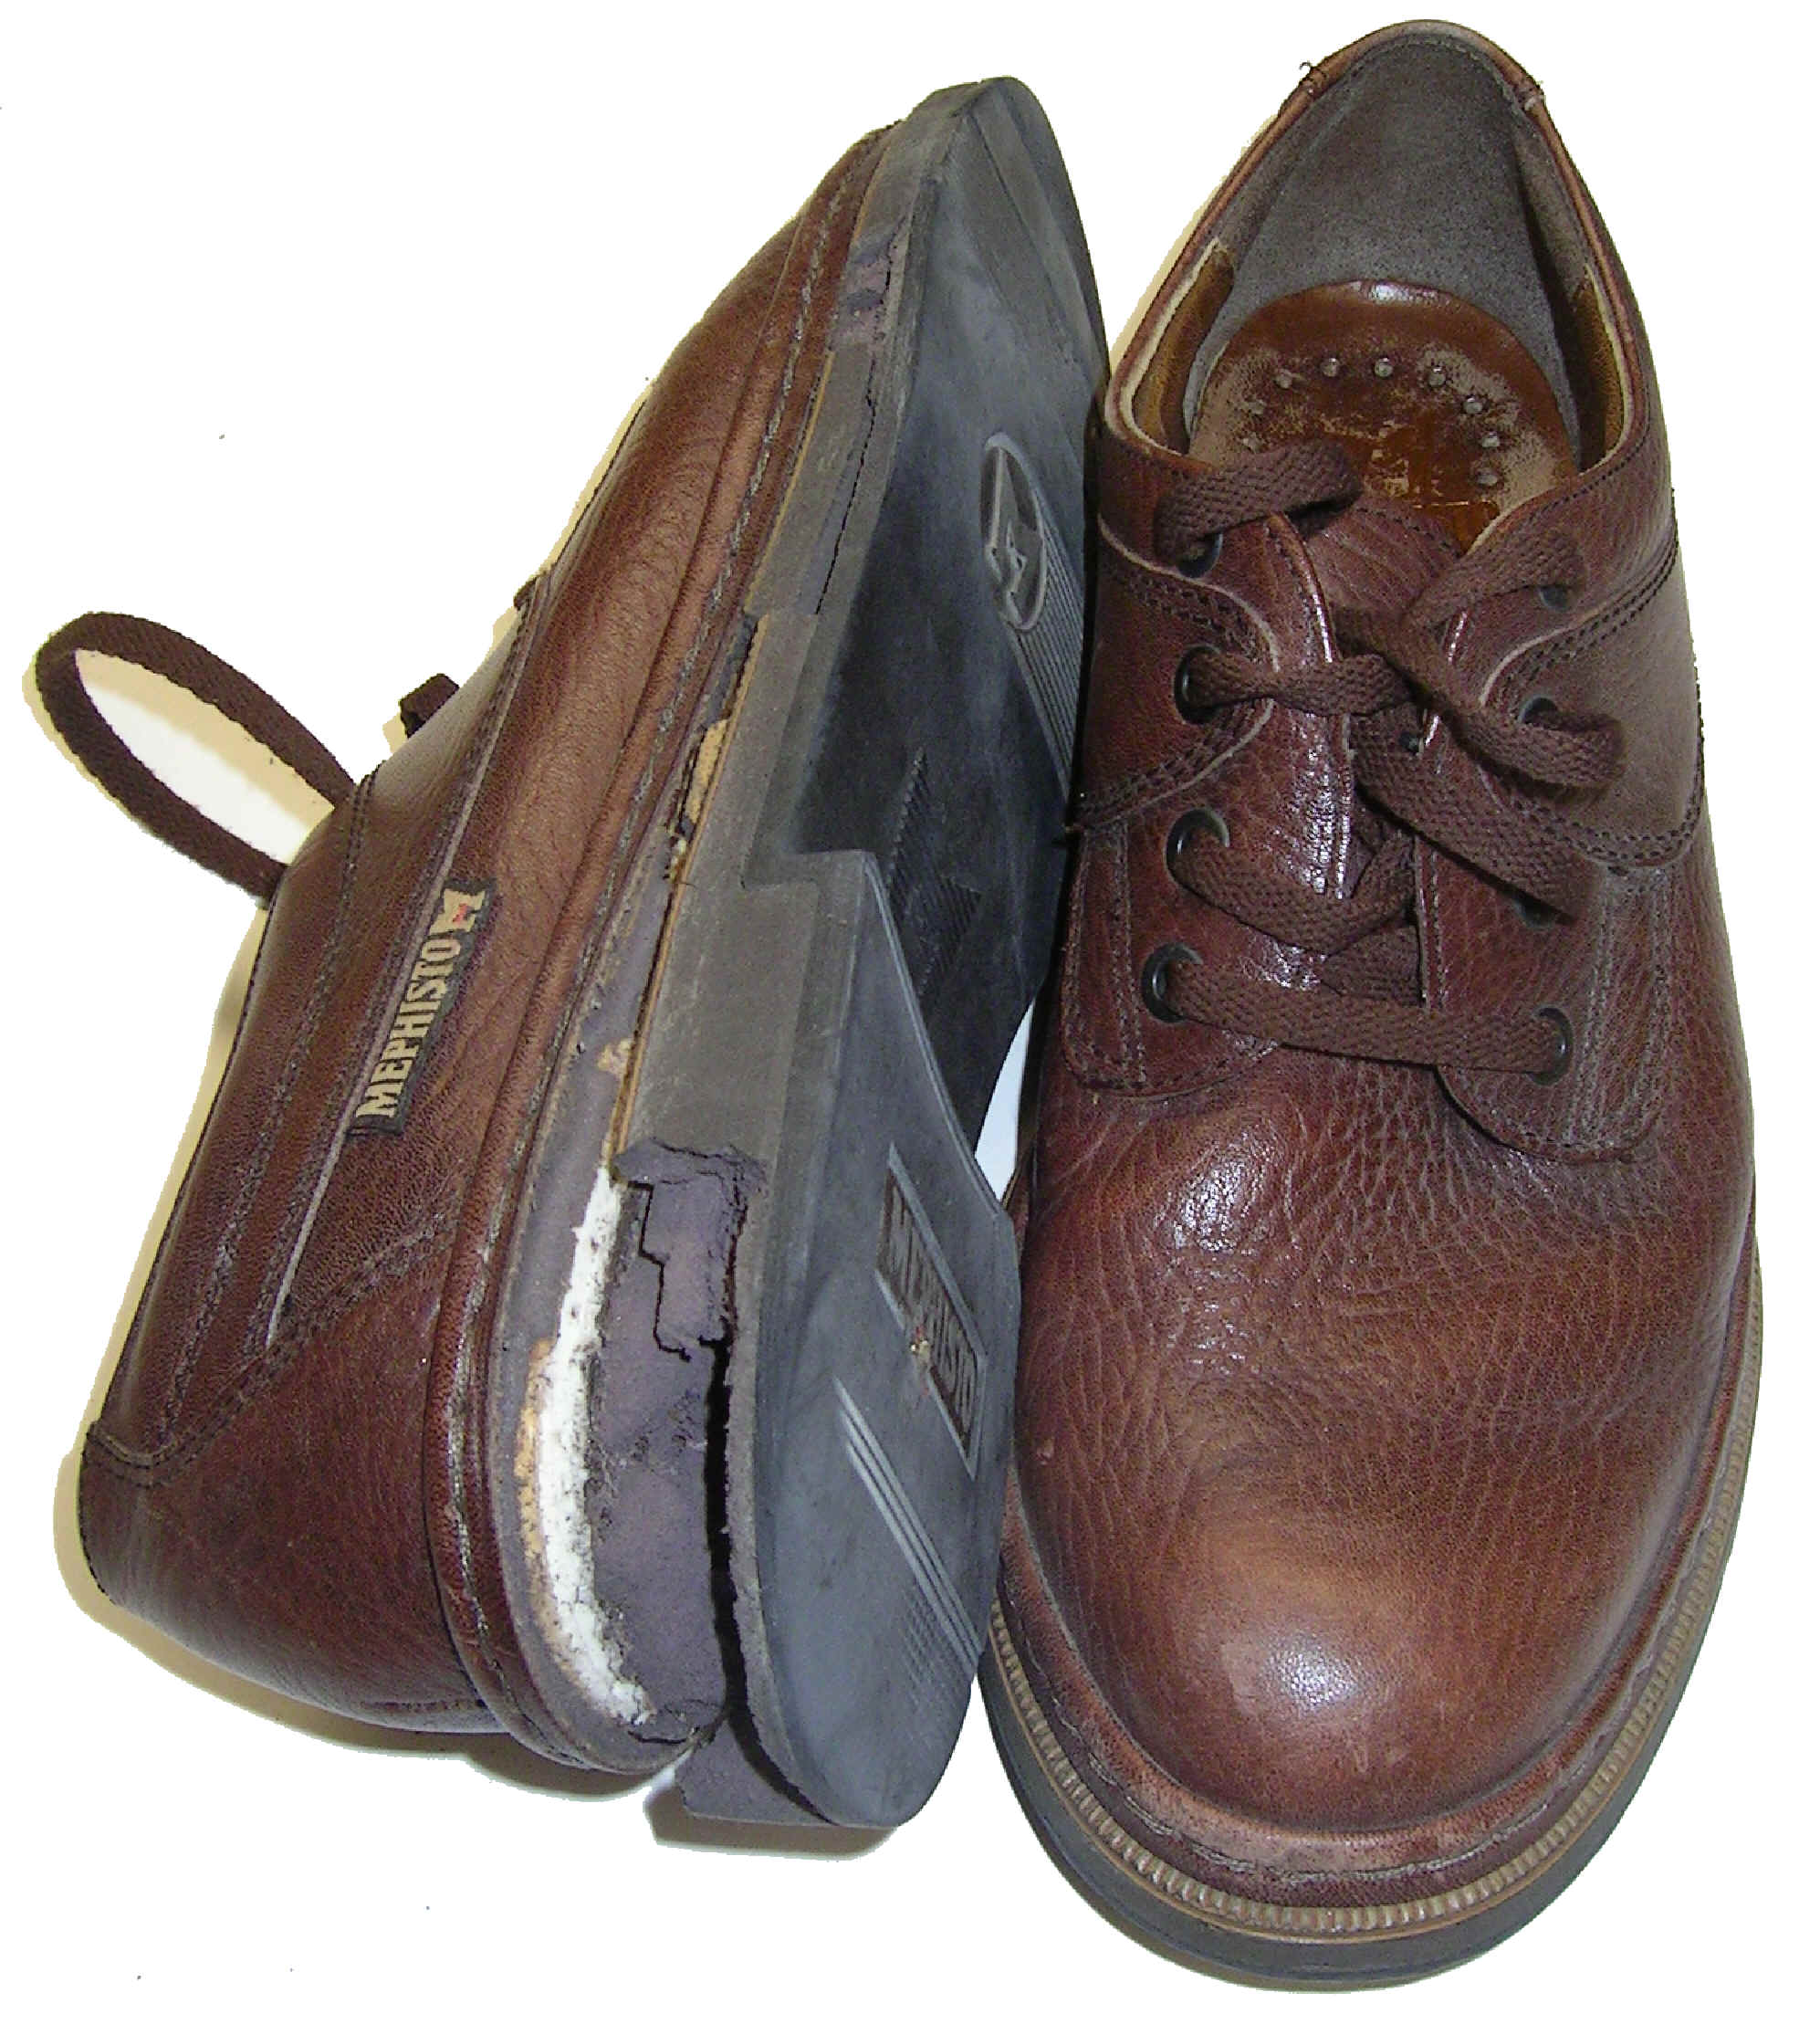 Clarks Shoes Resole